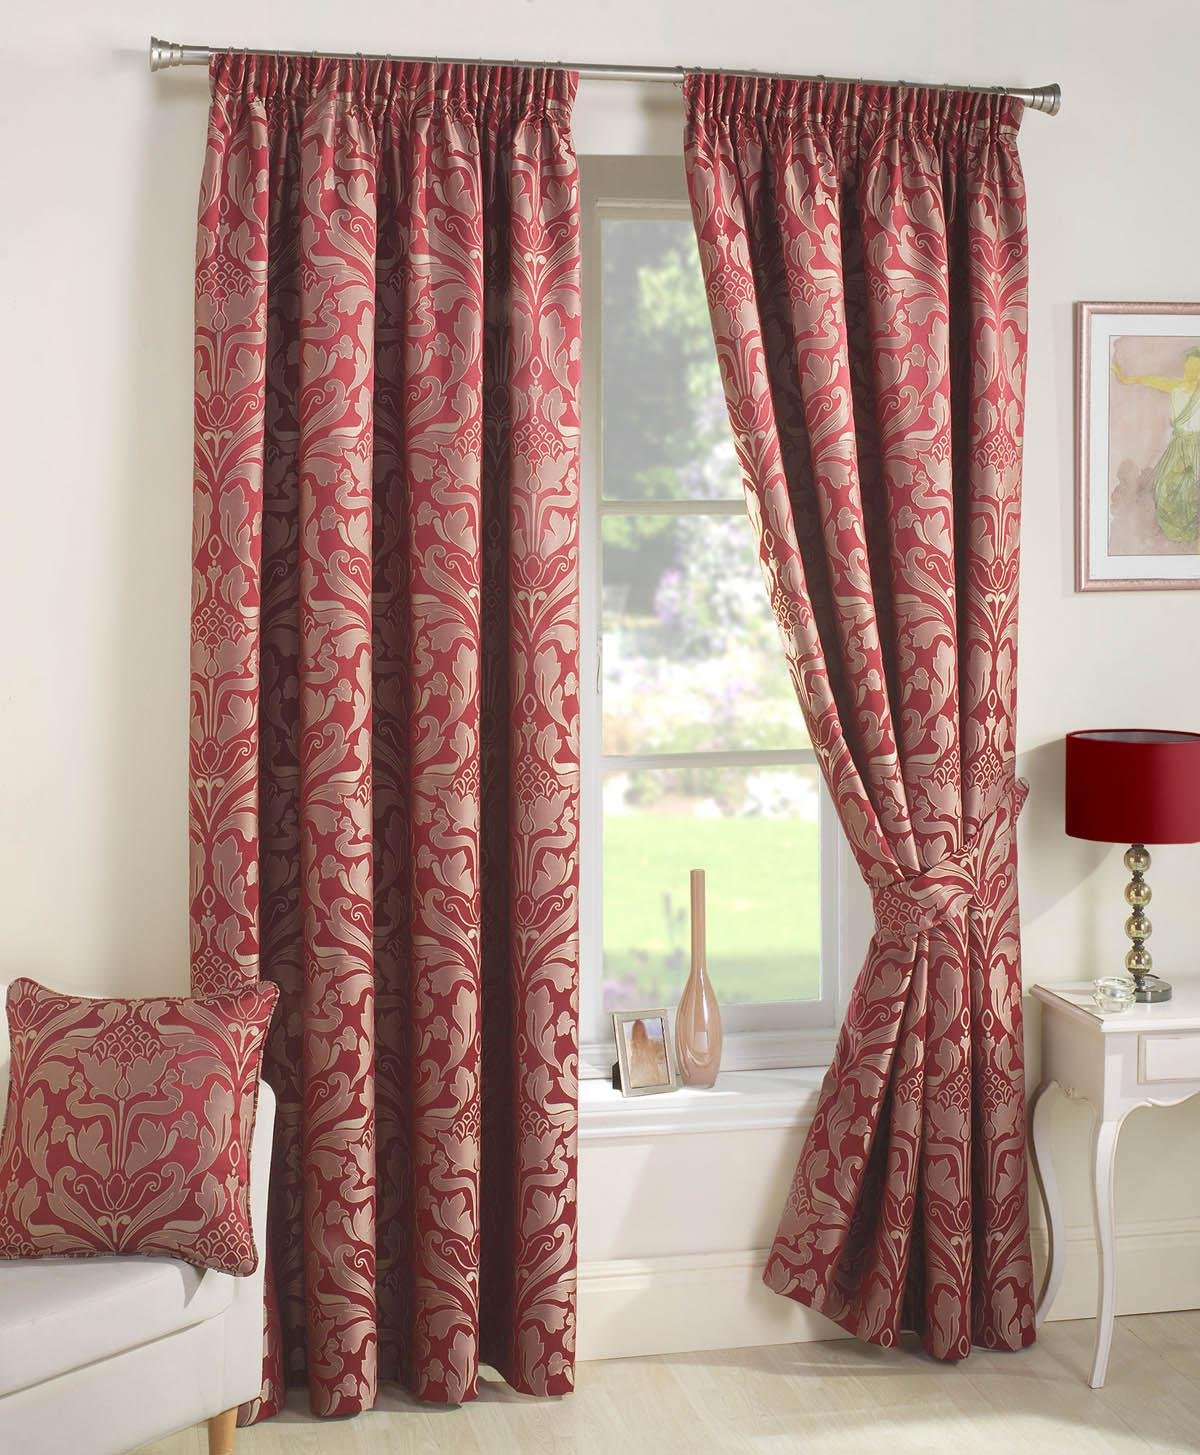 Red Curtains Living Room Crompton Ready Made Lined Curtains Red Luxury Headed Curtains